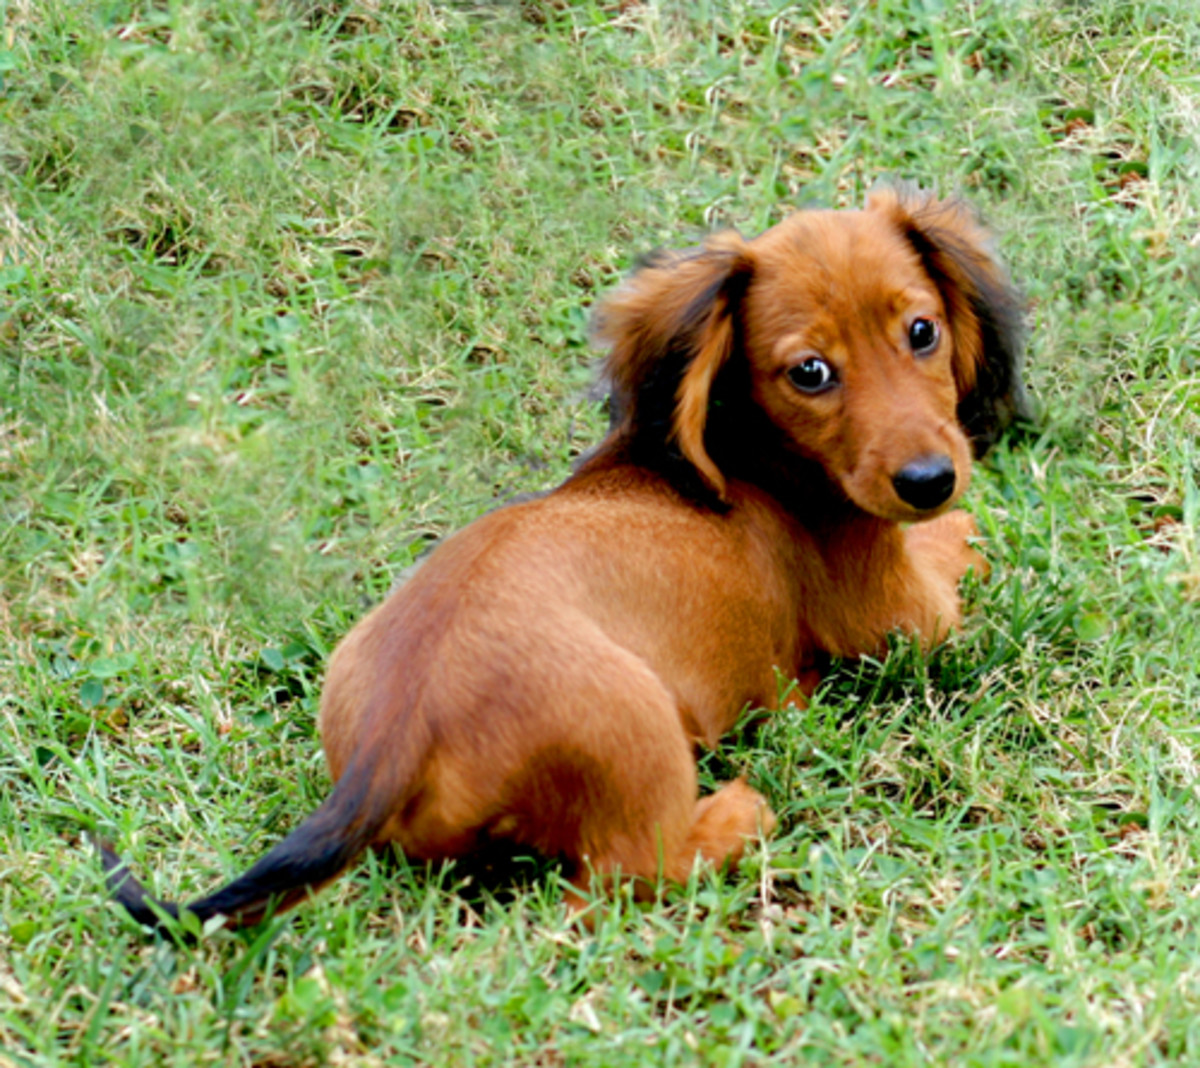 Dachshunds are among the breeds known to be vulnerable to vaccine related auto-immune disorders.